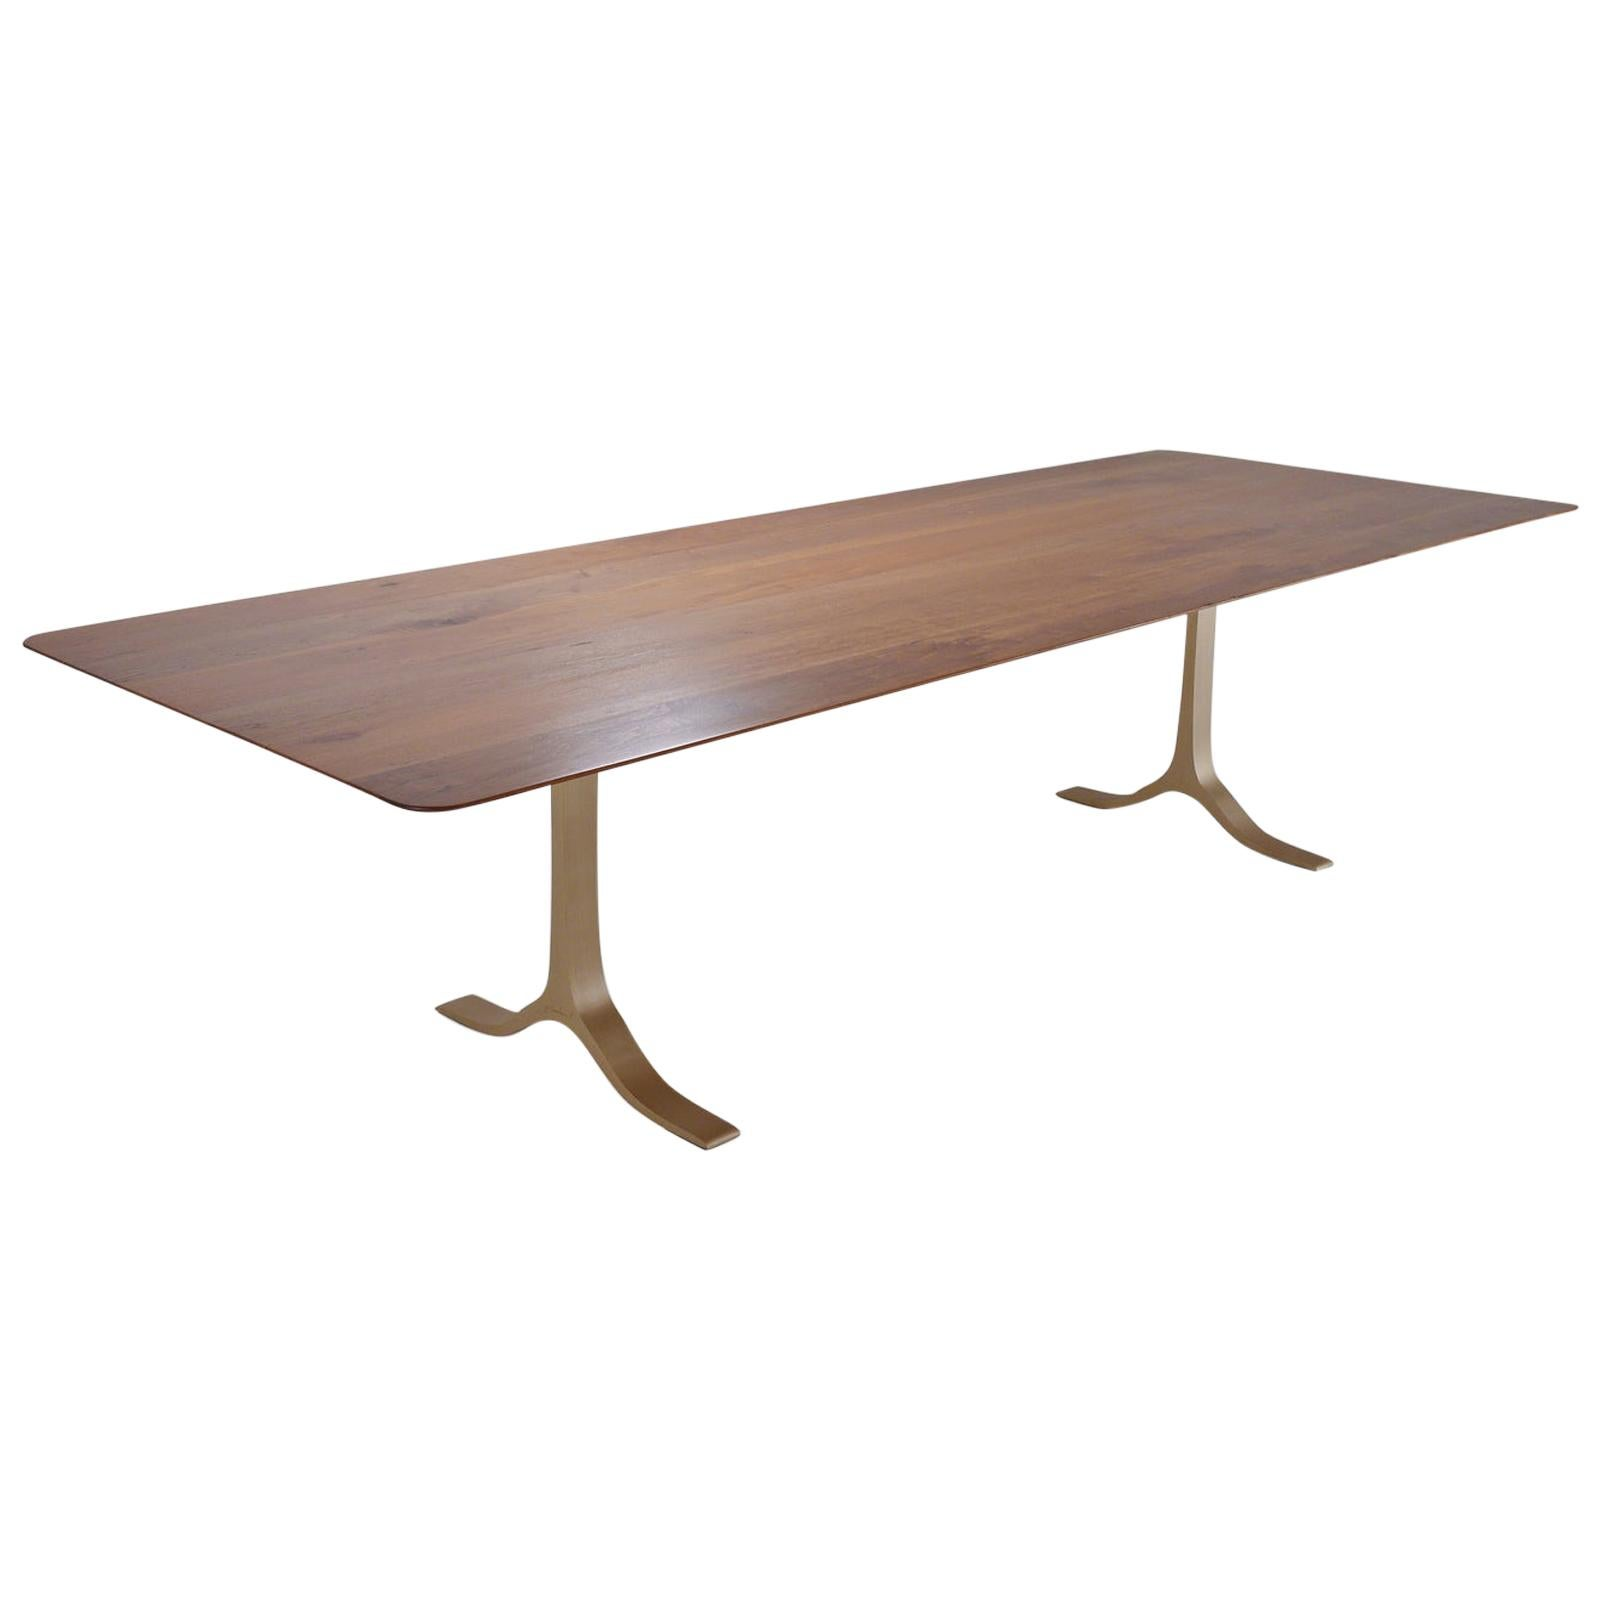 Bespoke Dining Table, Reclaimed Wood, Sand Cast Brass Base, by P. Tendercool